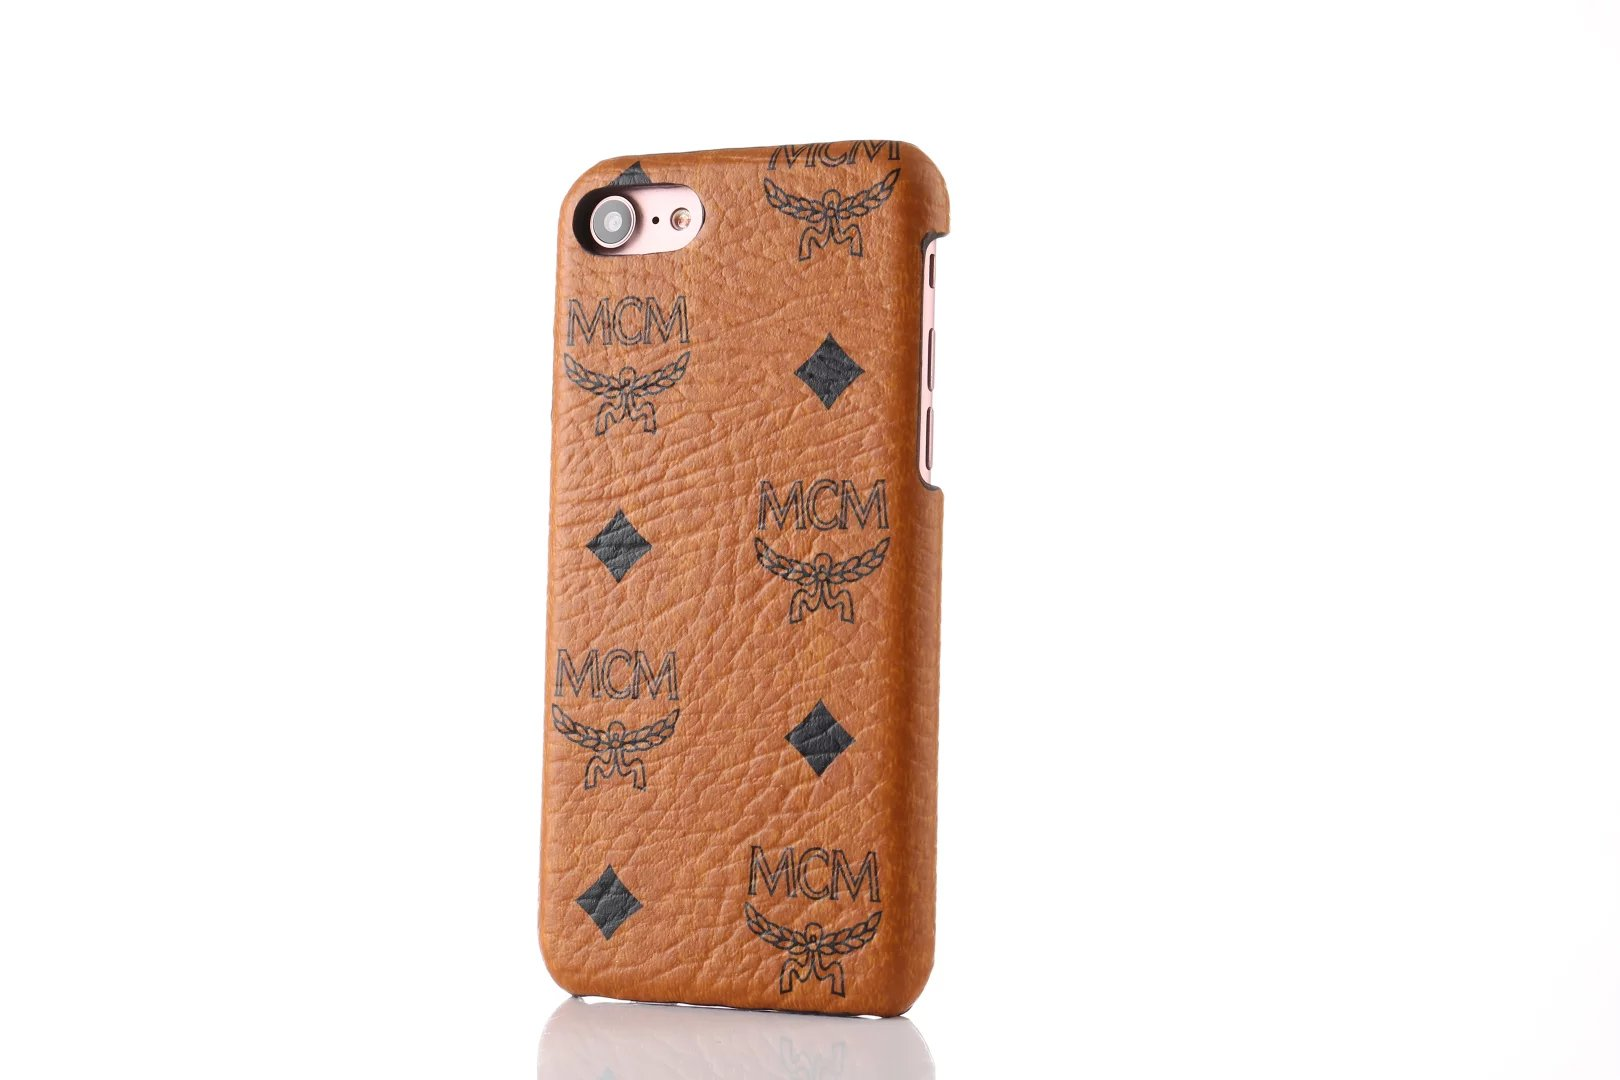 best looking iphone 6 Plus case good iphone 6 Plus cases fashion iphone6 plus case apple iphone 6 cases and covers iphone 6 capacity two cell phone case best iphone 6 covers mophie iphone battery case phone cases